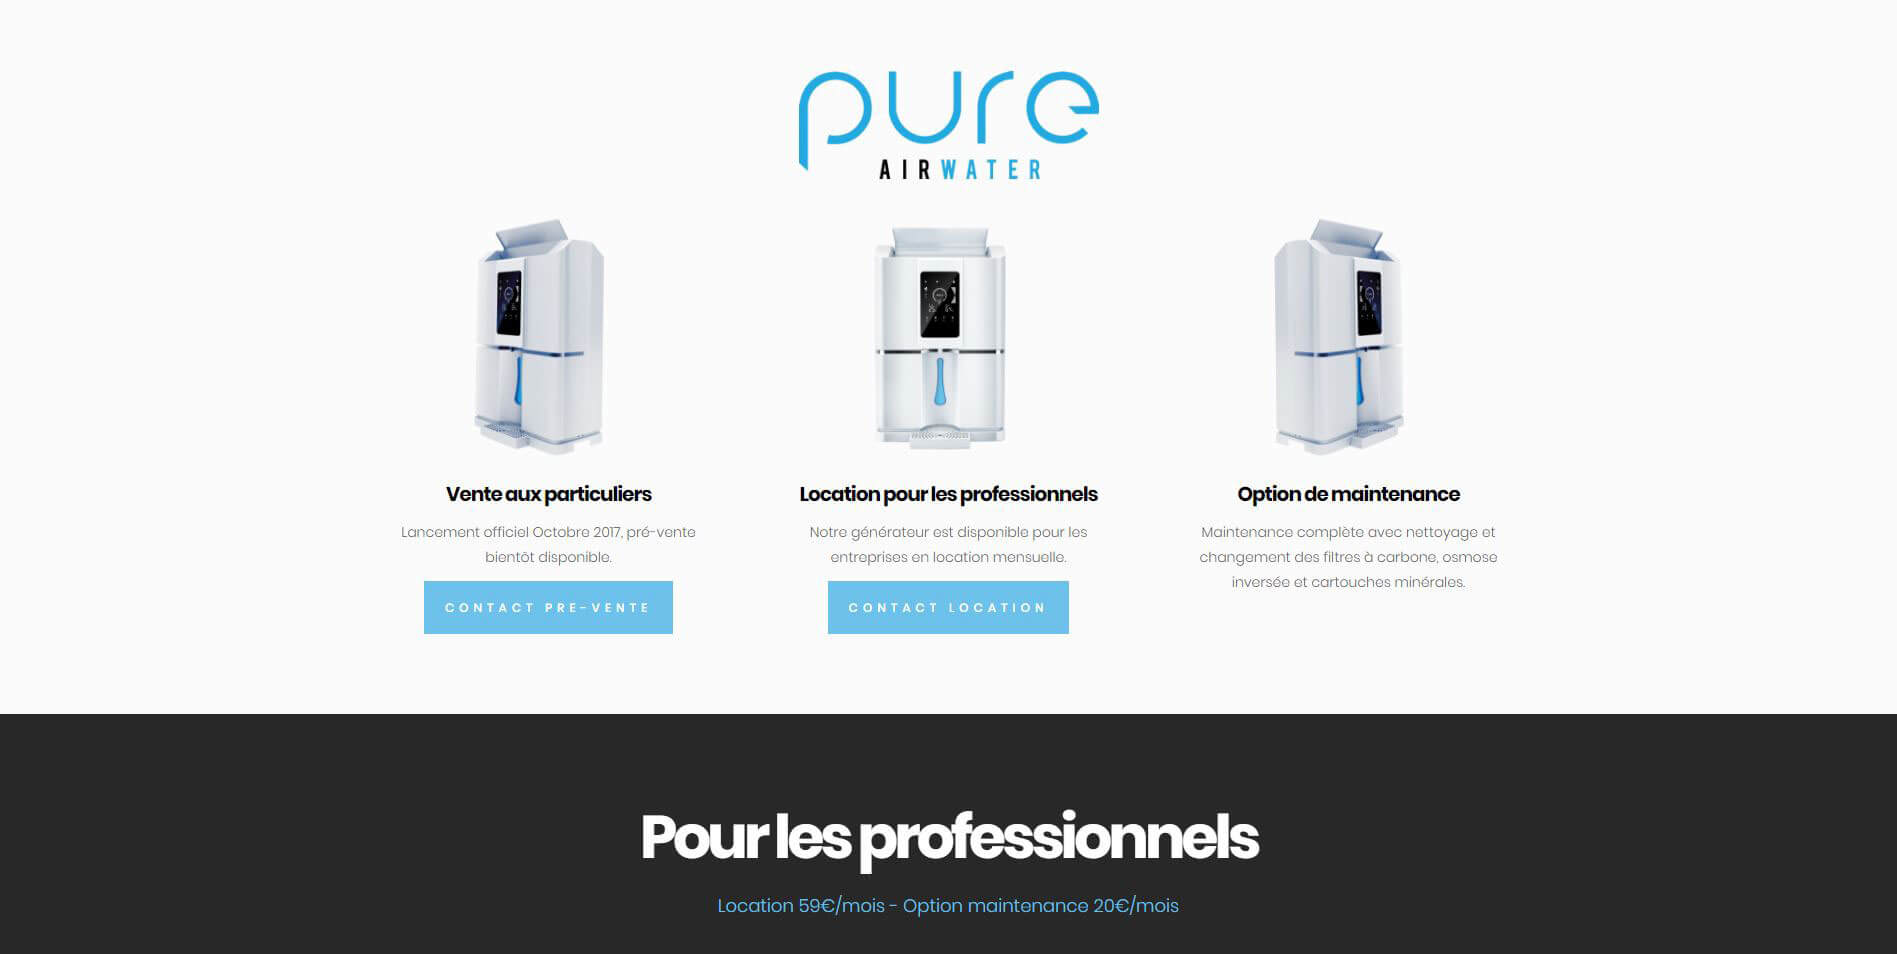 Website – Pure AirWater